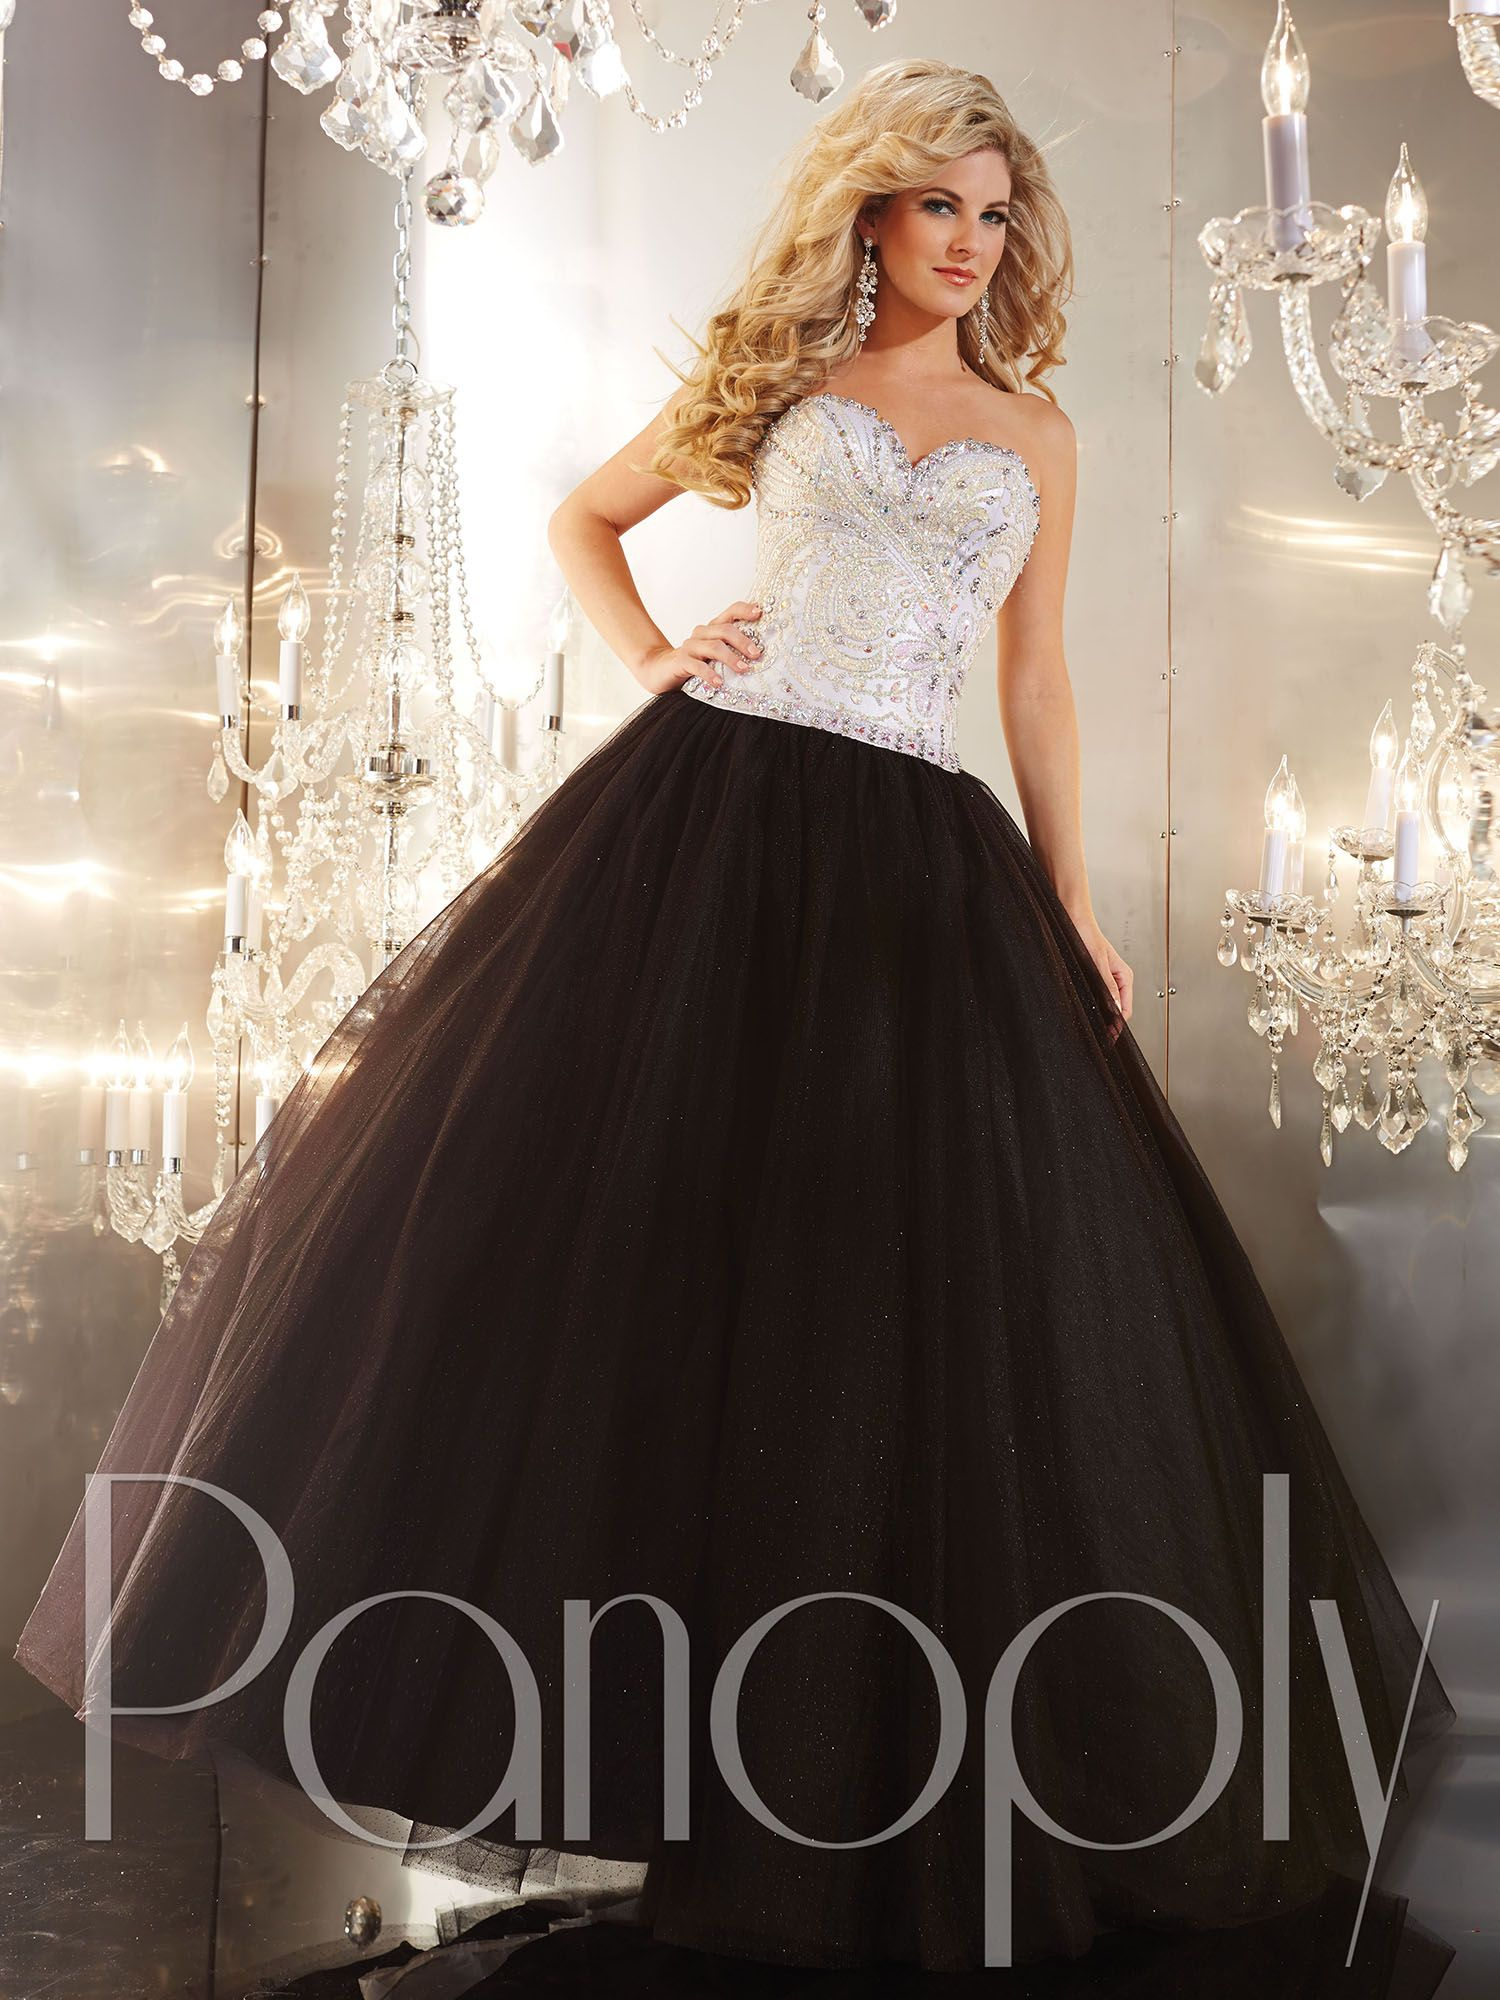 Panoply style strapless sweetheart neckline heavily sequined